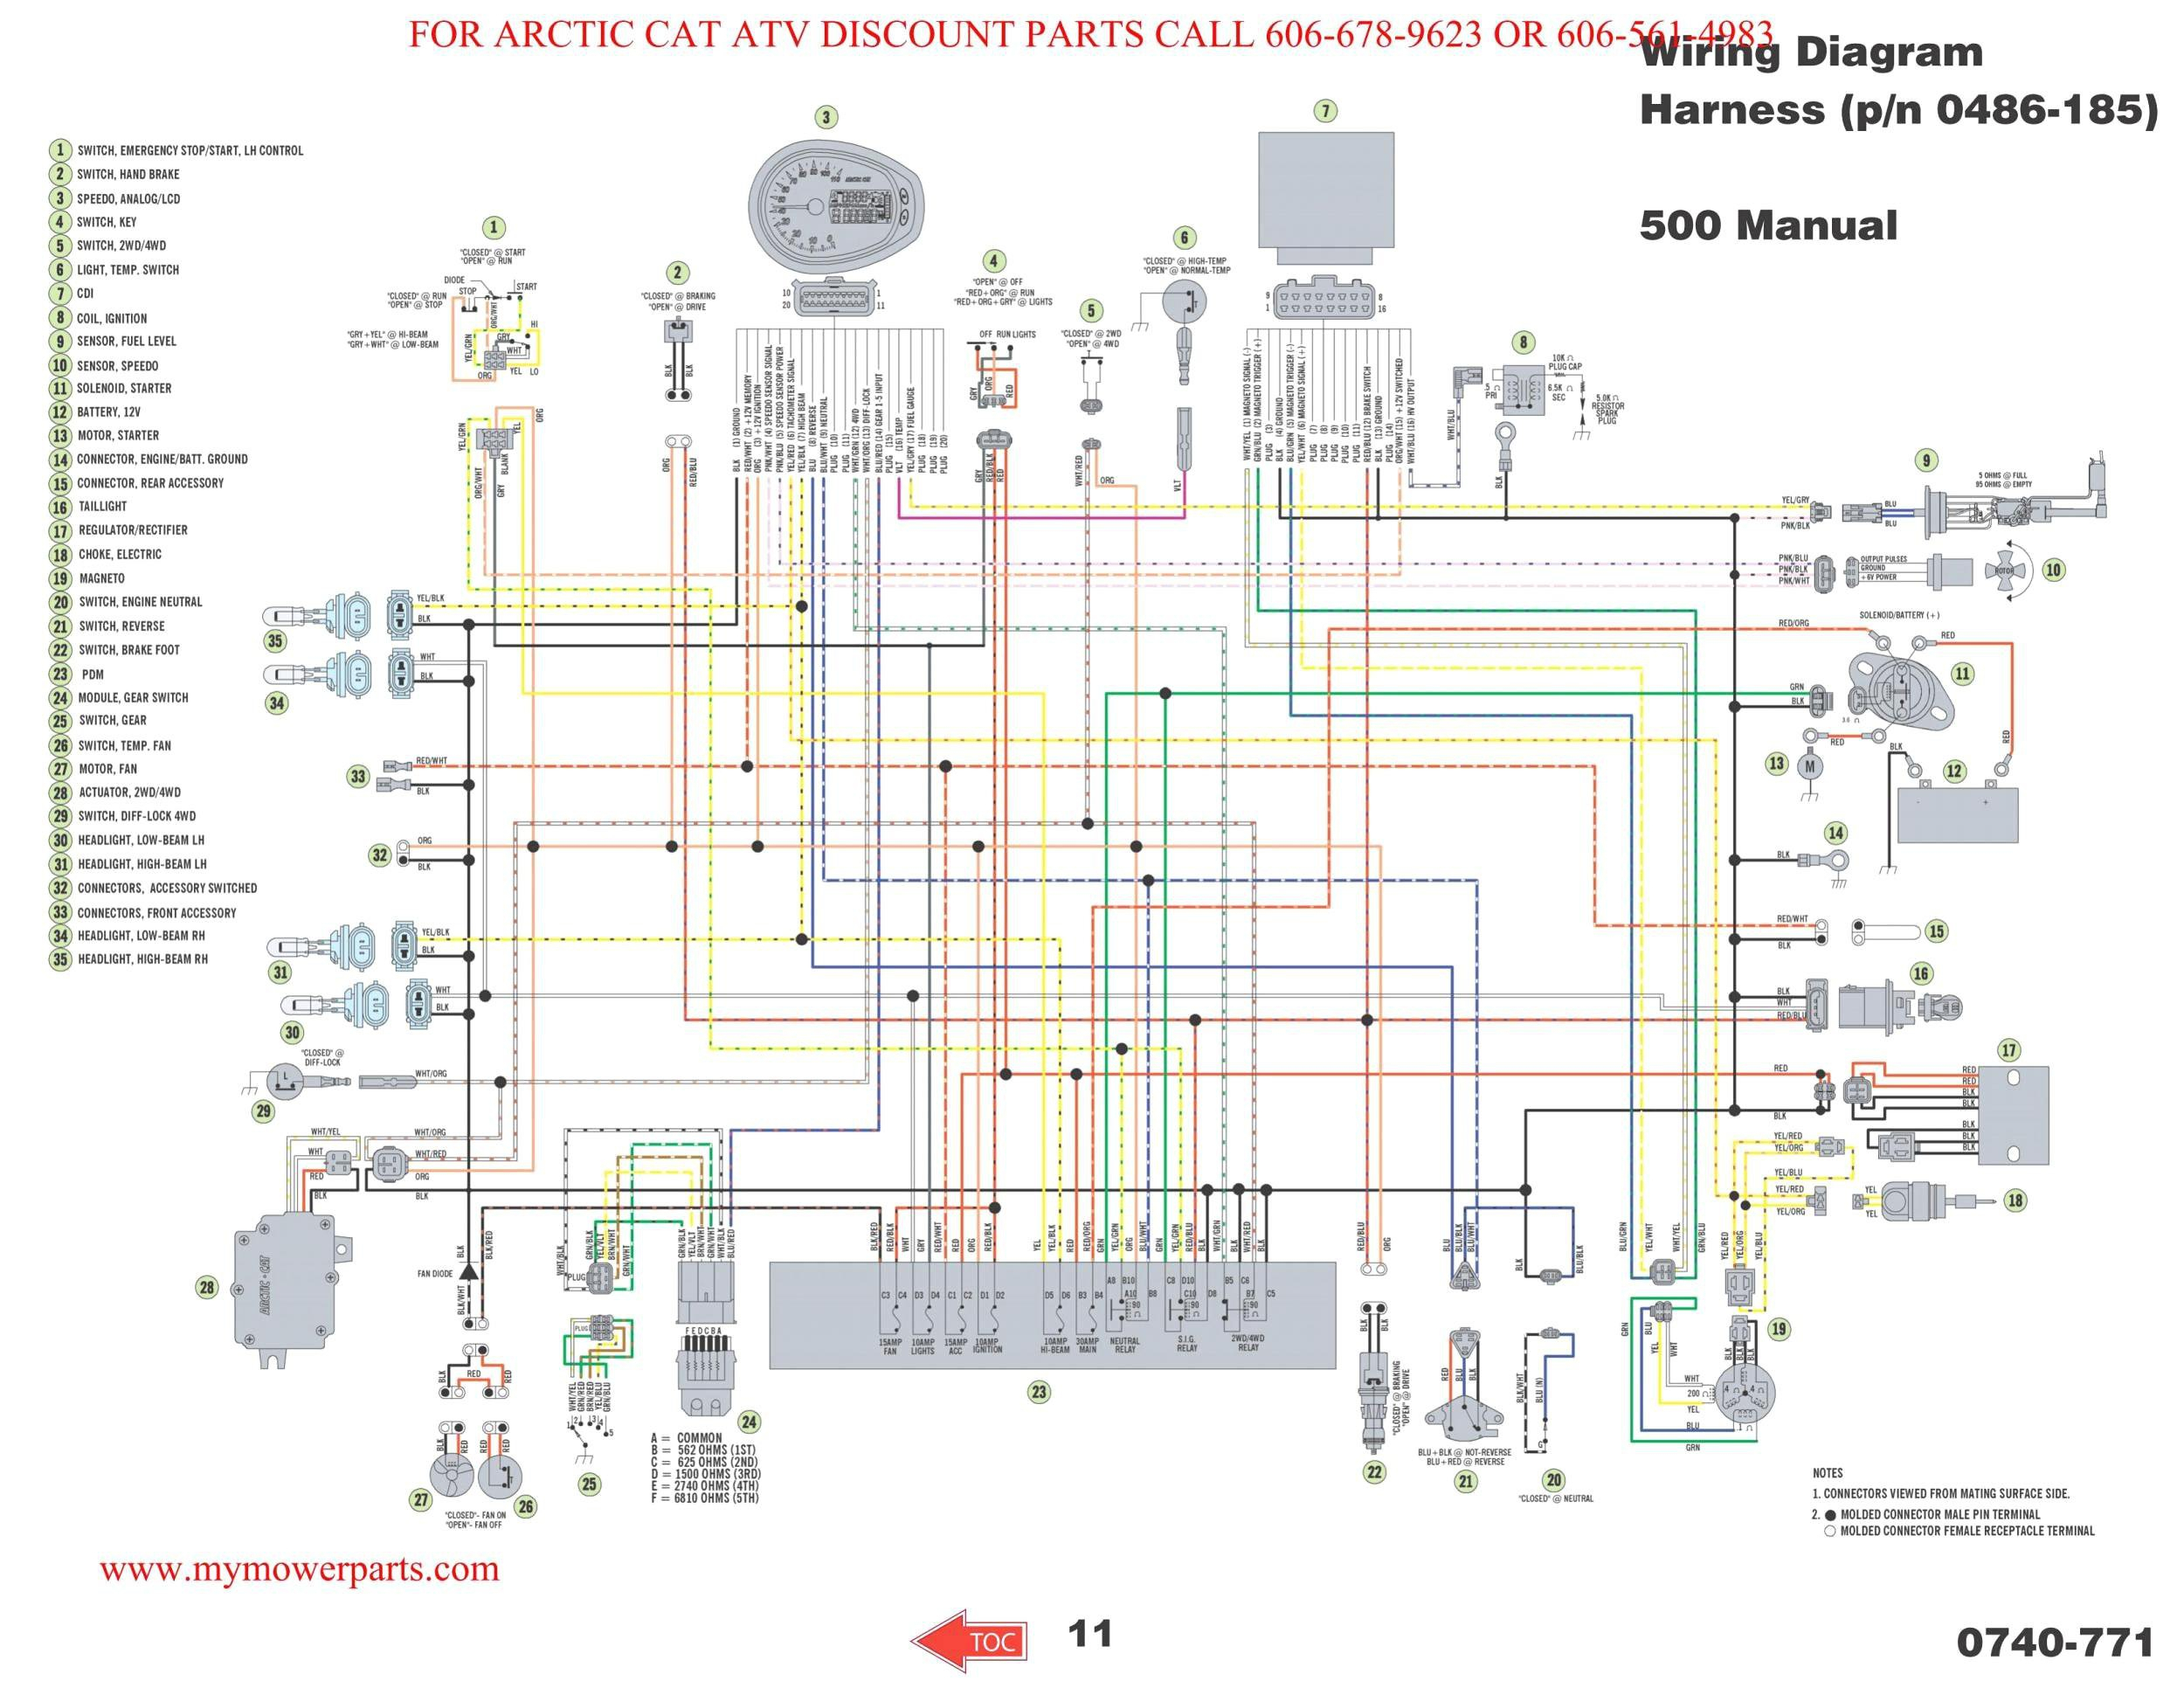 2008 polaris wiring diagram 2004 polaris sportsman 400 wiring diagram sample 2007 polaris wiring diagram